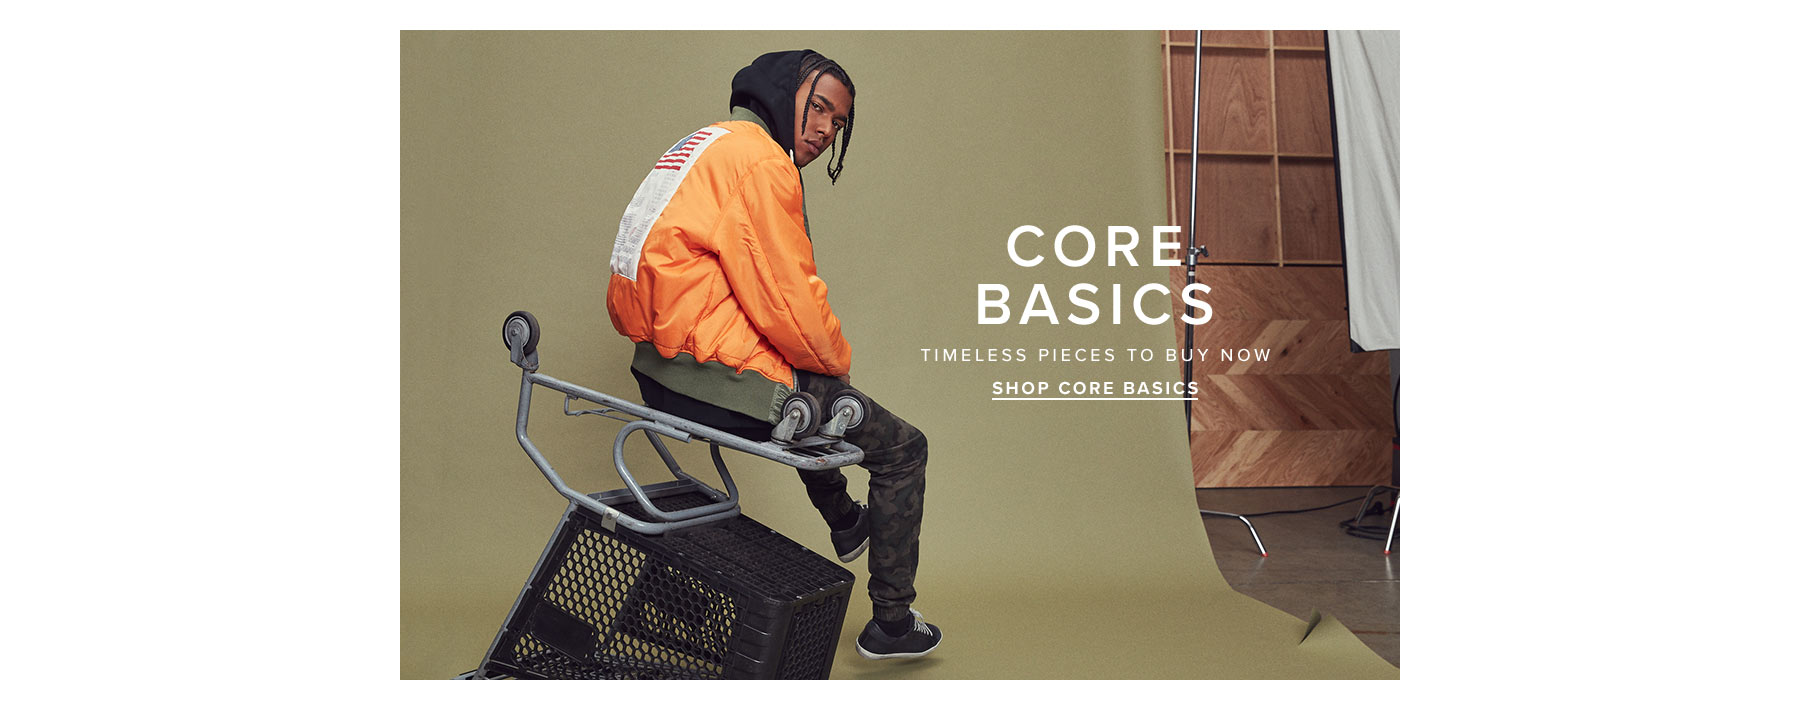 Core basics. Timeless pieces to buy now. Shop core basics.